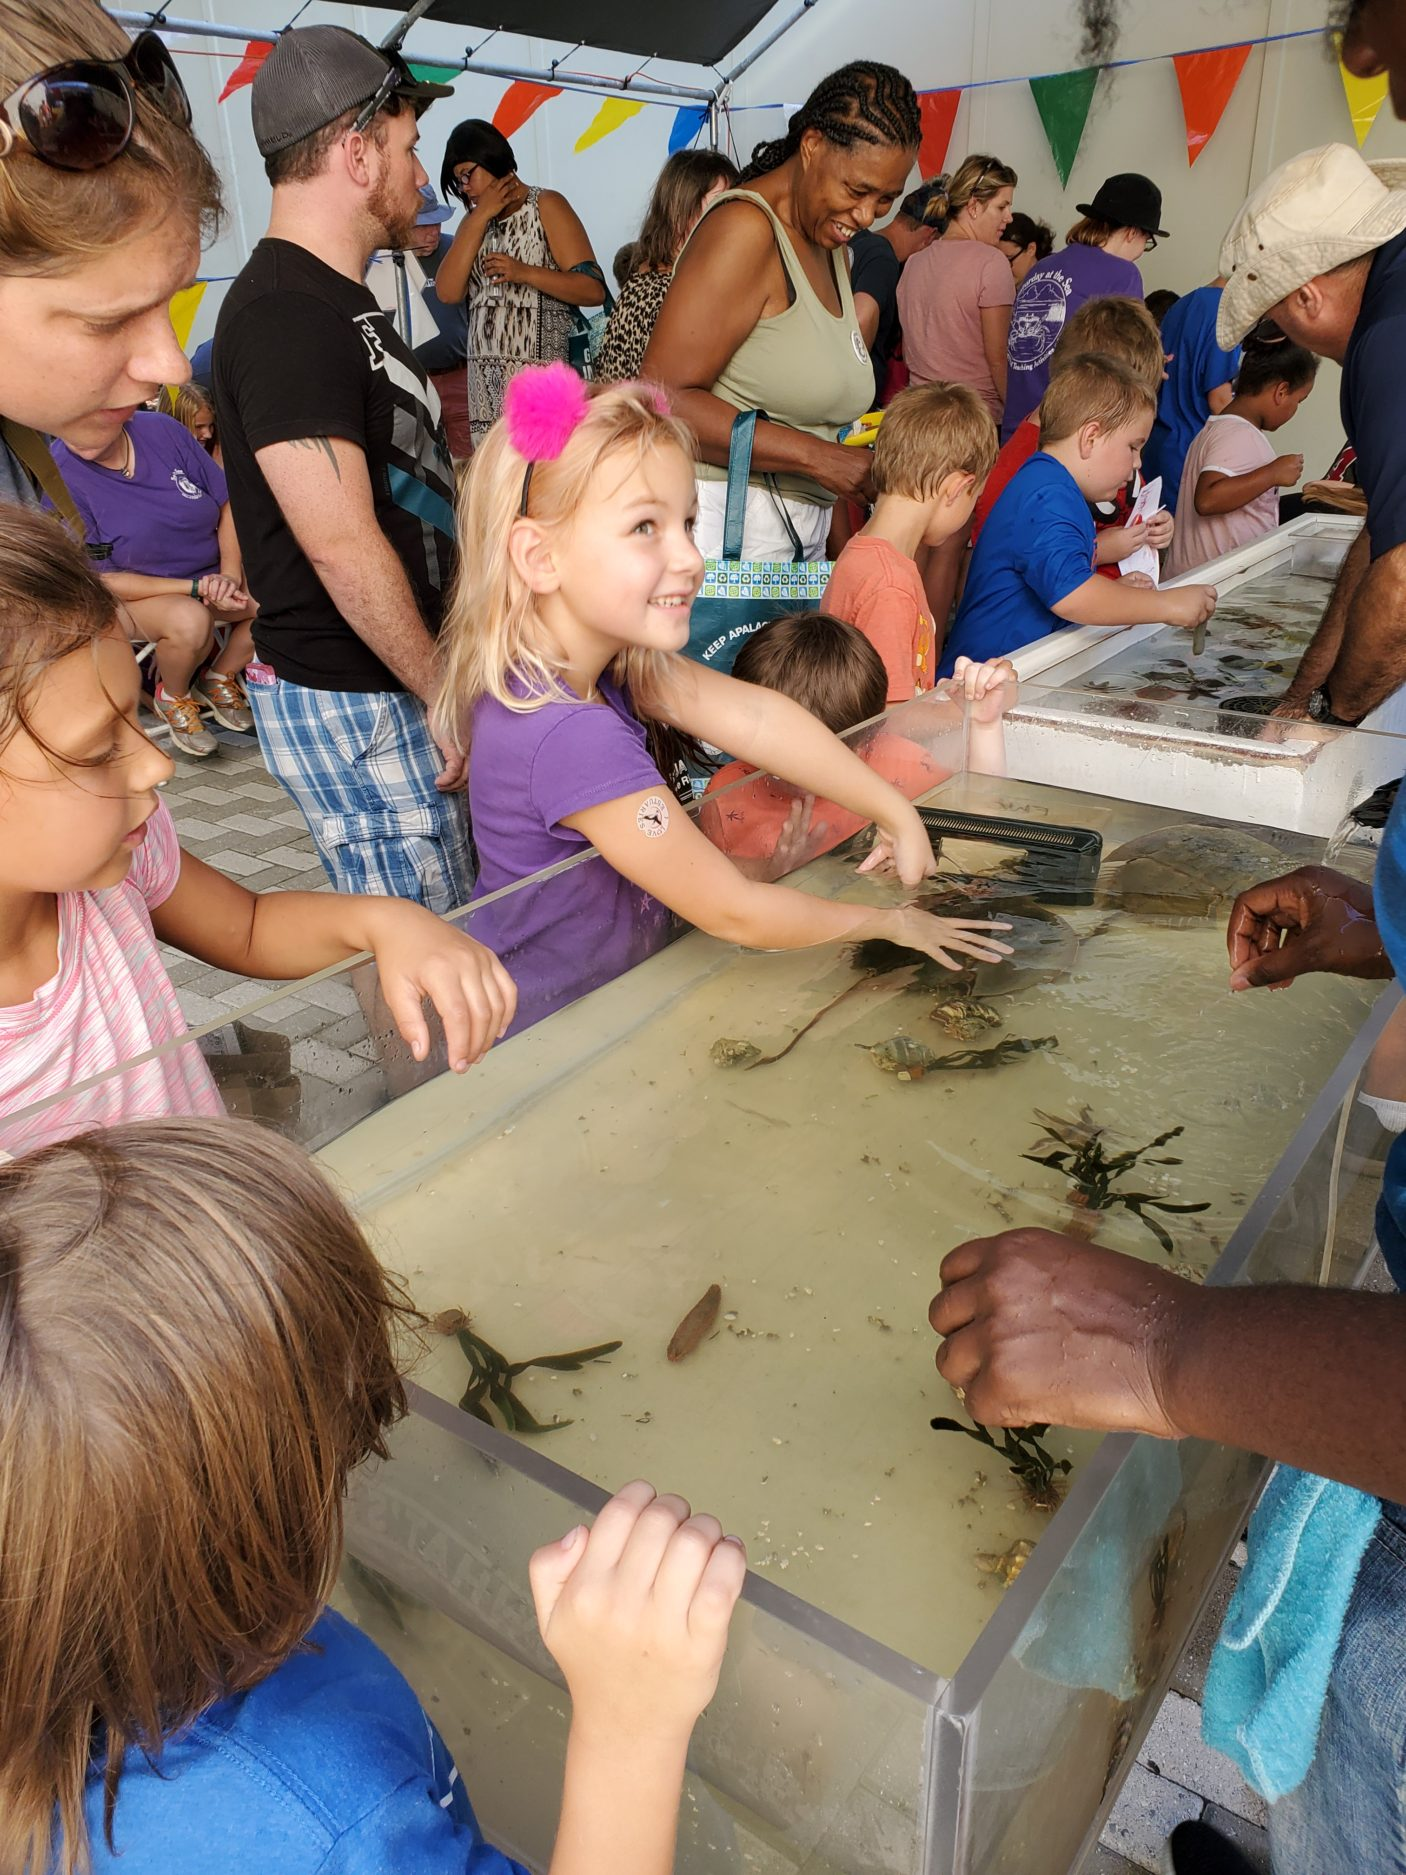 This year's Estuaries Day attracted nearly 1200 visitors, with activities organized to support awareness and understanding of estuaries